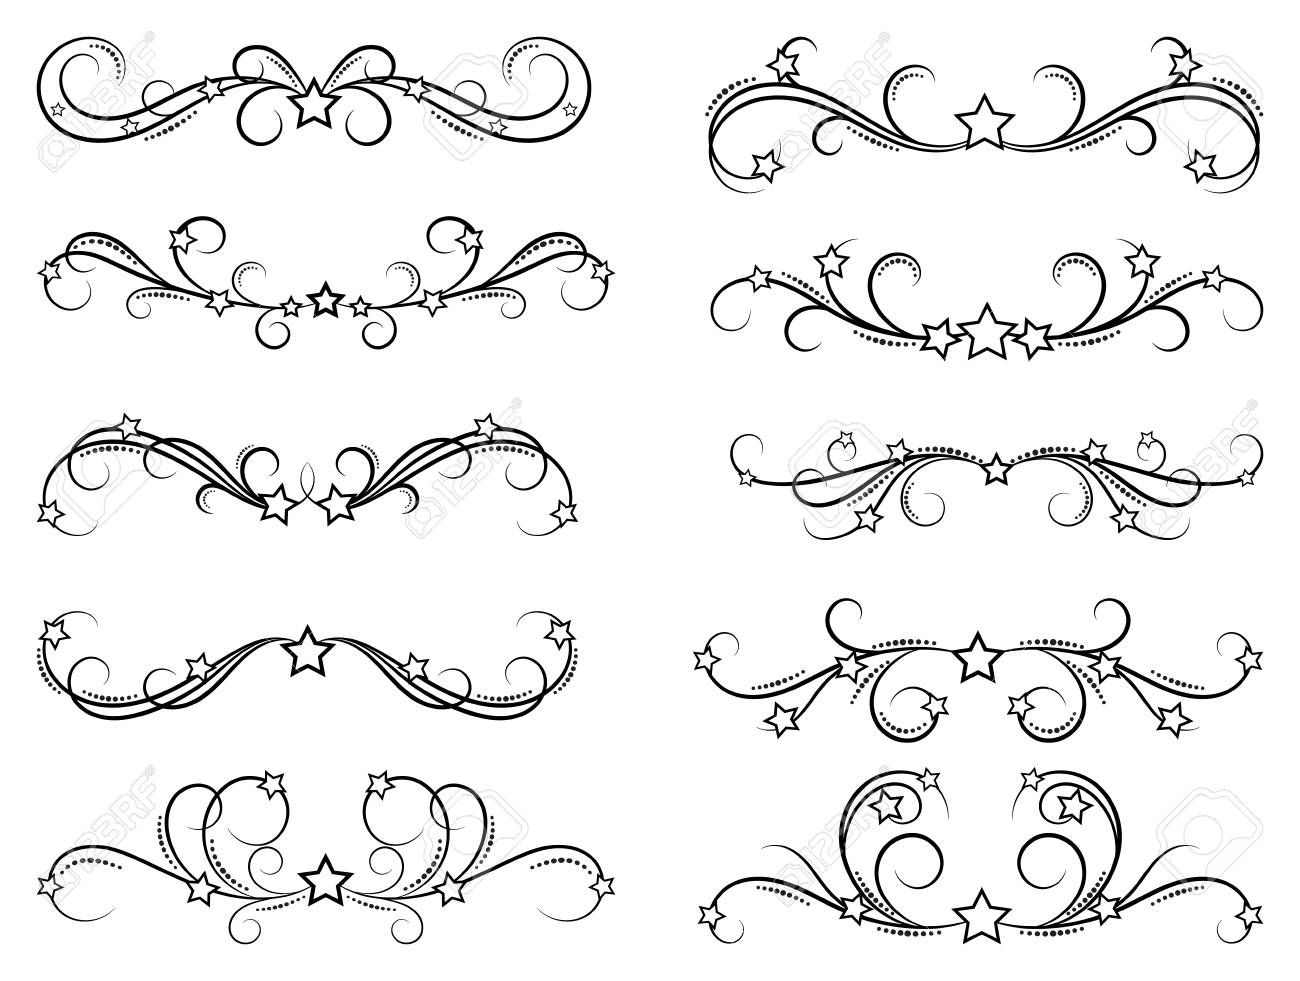 Dividers With Stars Decorative Design Border Elements For Frames Royalty Free Cliparts Vectors And Stock Illustration Image 92572667